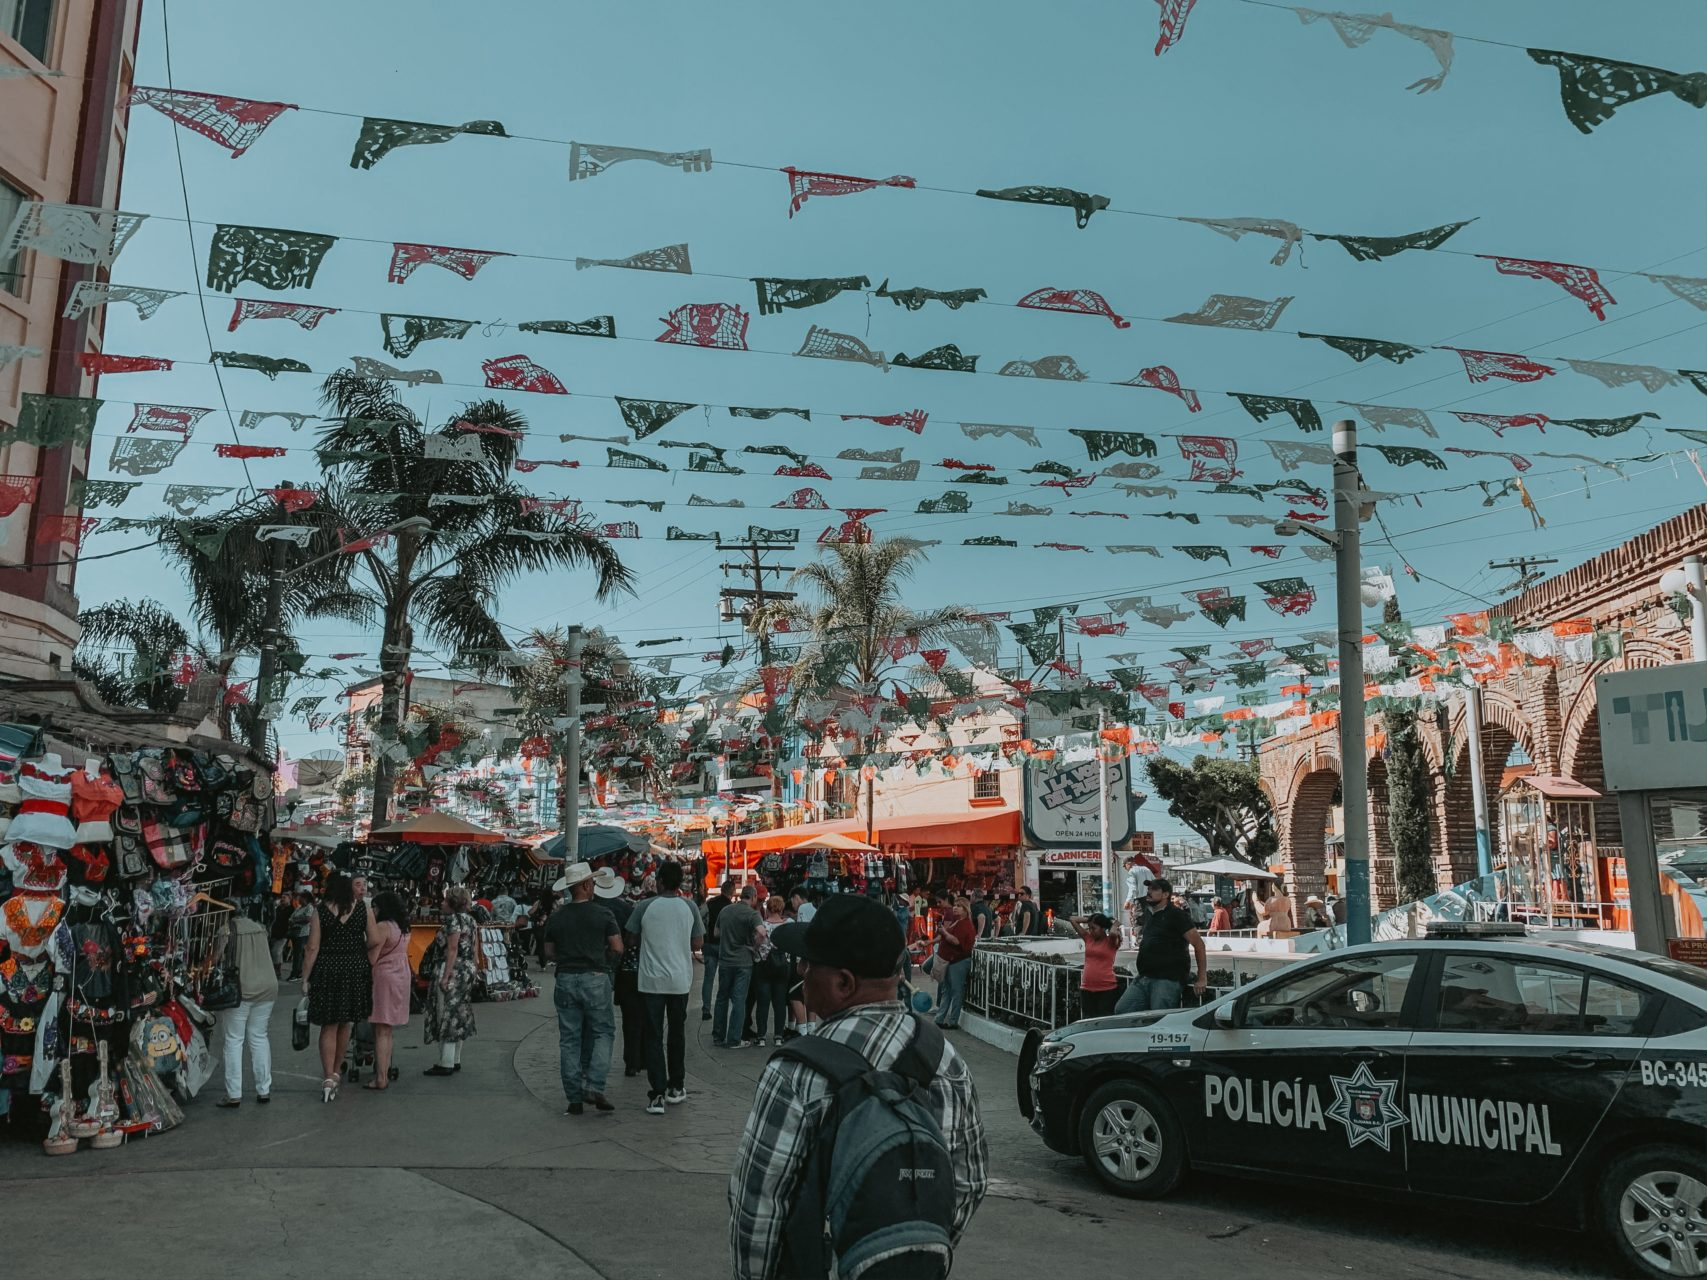 A busy street in Todos Santos, Mexico, with flags and market stalls.